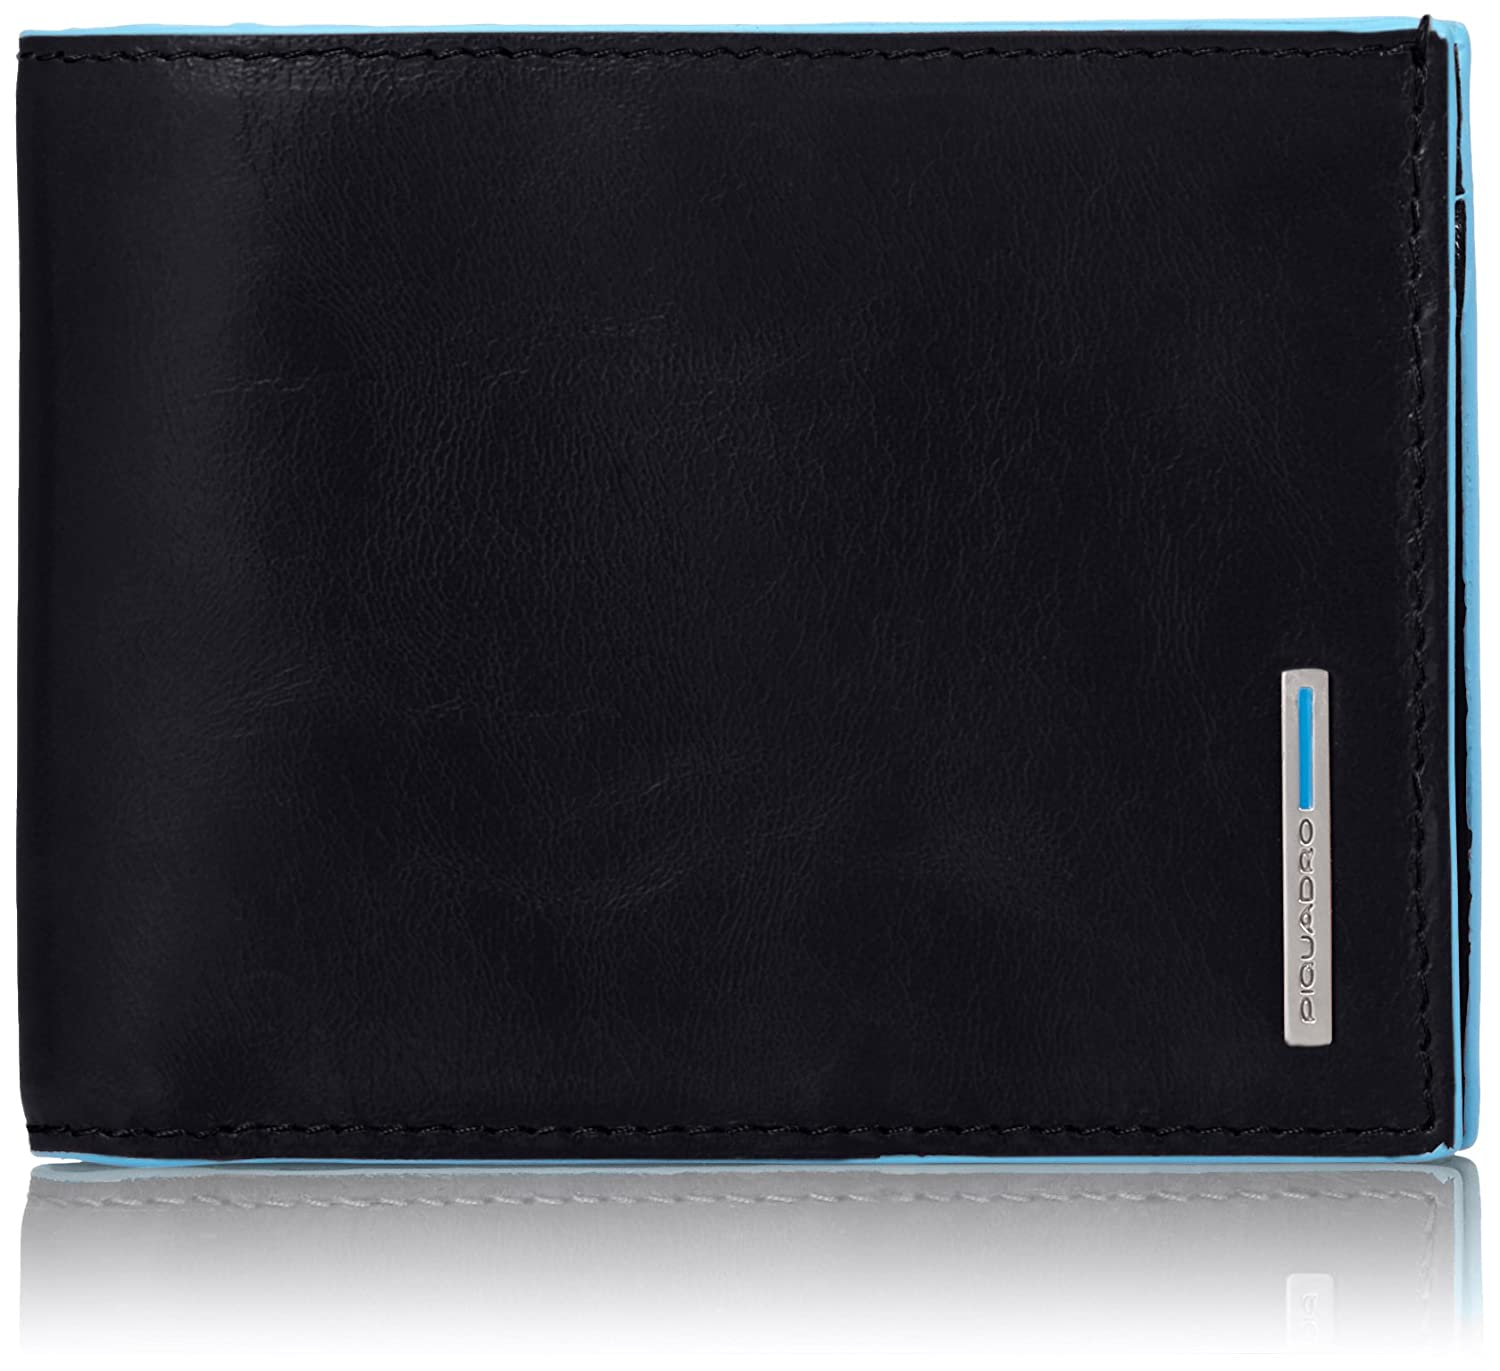 Piquadro Leather Man's Wallet with Coin Purse Case and Credit Cards Slots, Dark Blue, One Size Piquadro Luggage Child Code PU1239B2/BLU2